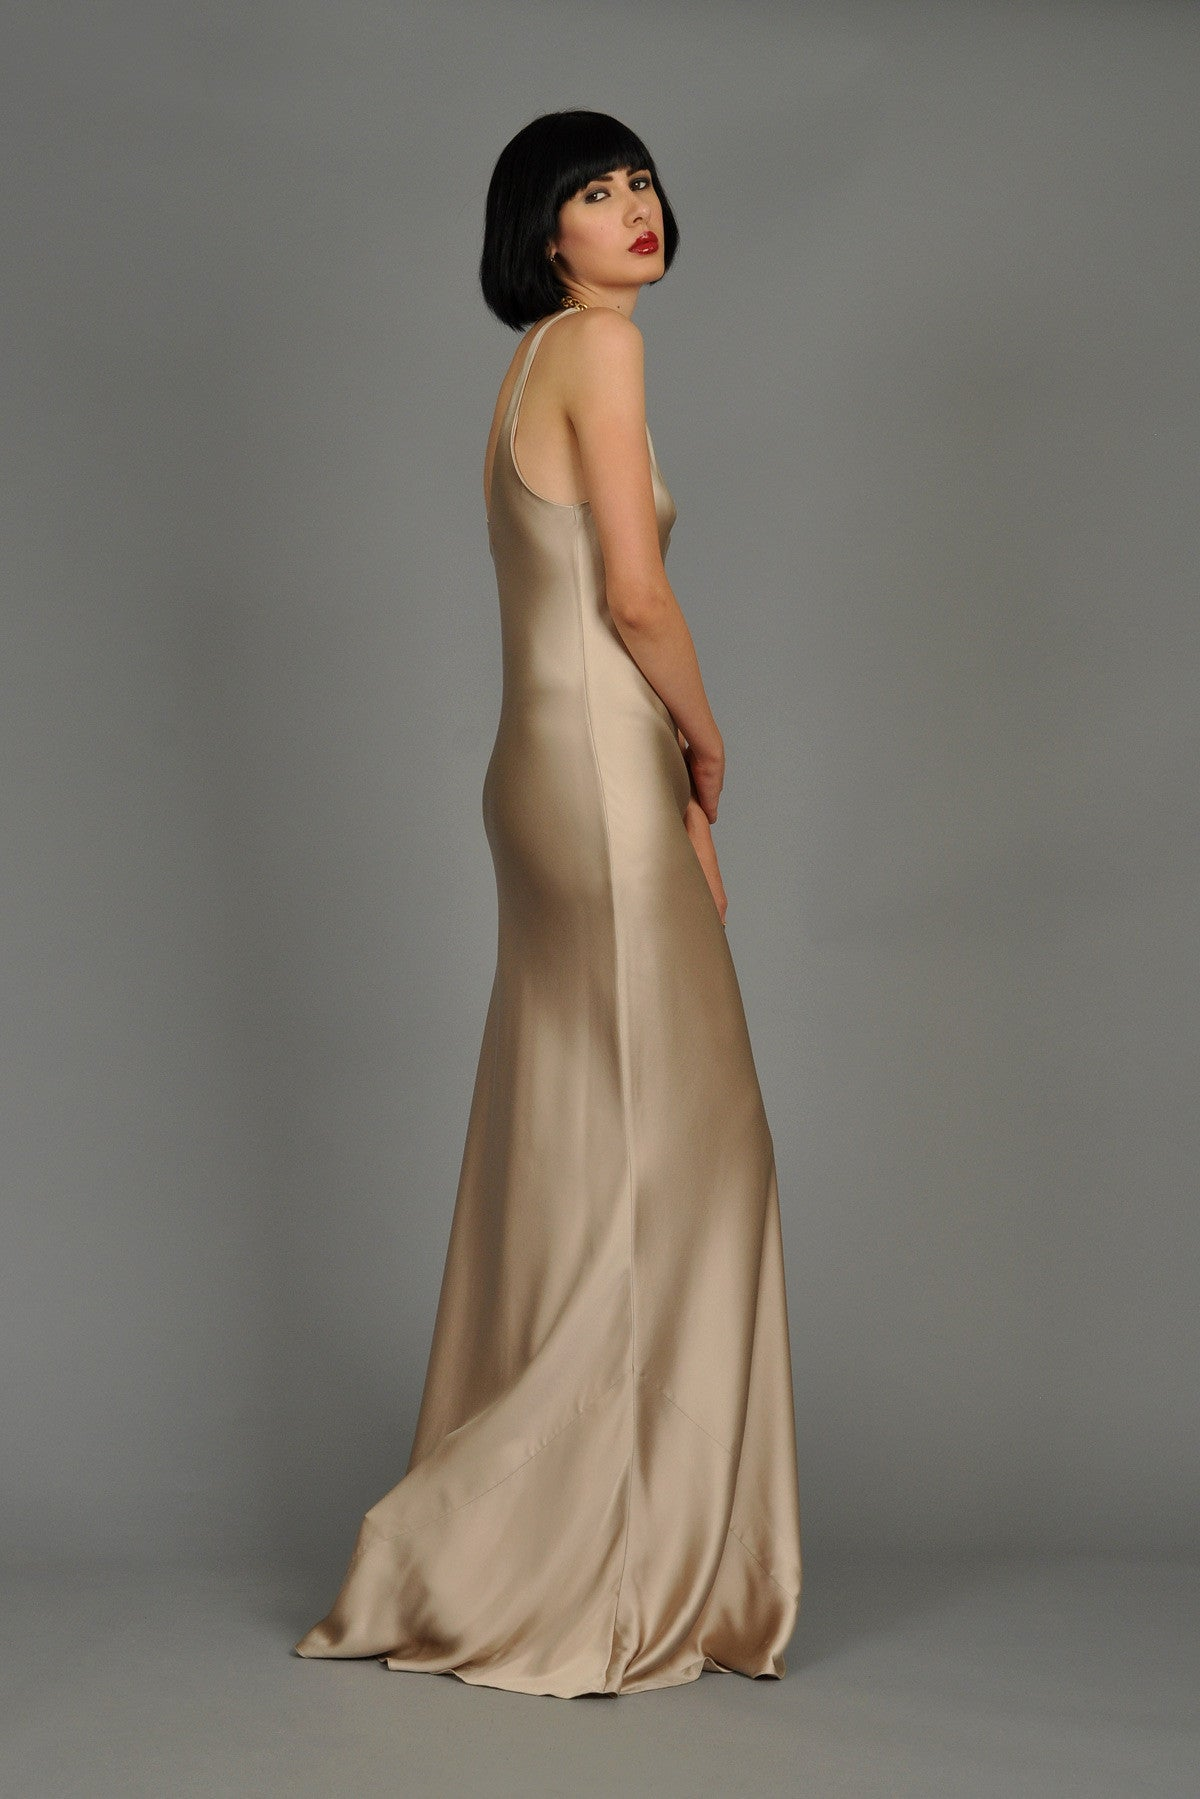 Ralph Lauren Collection Golden Silk Evening Gown | BUSTOWN MODERN